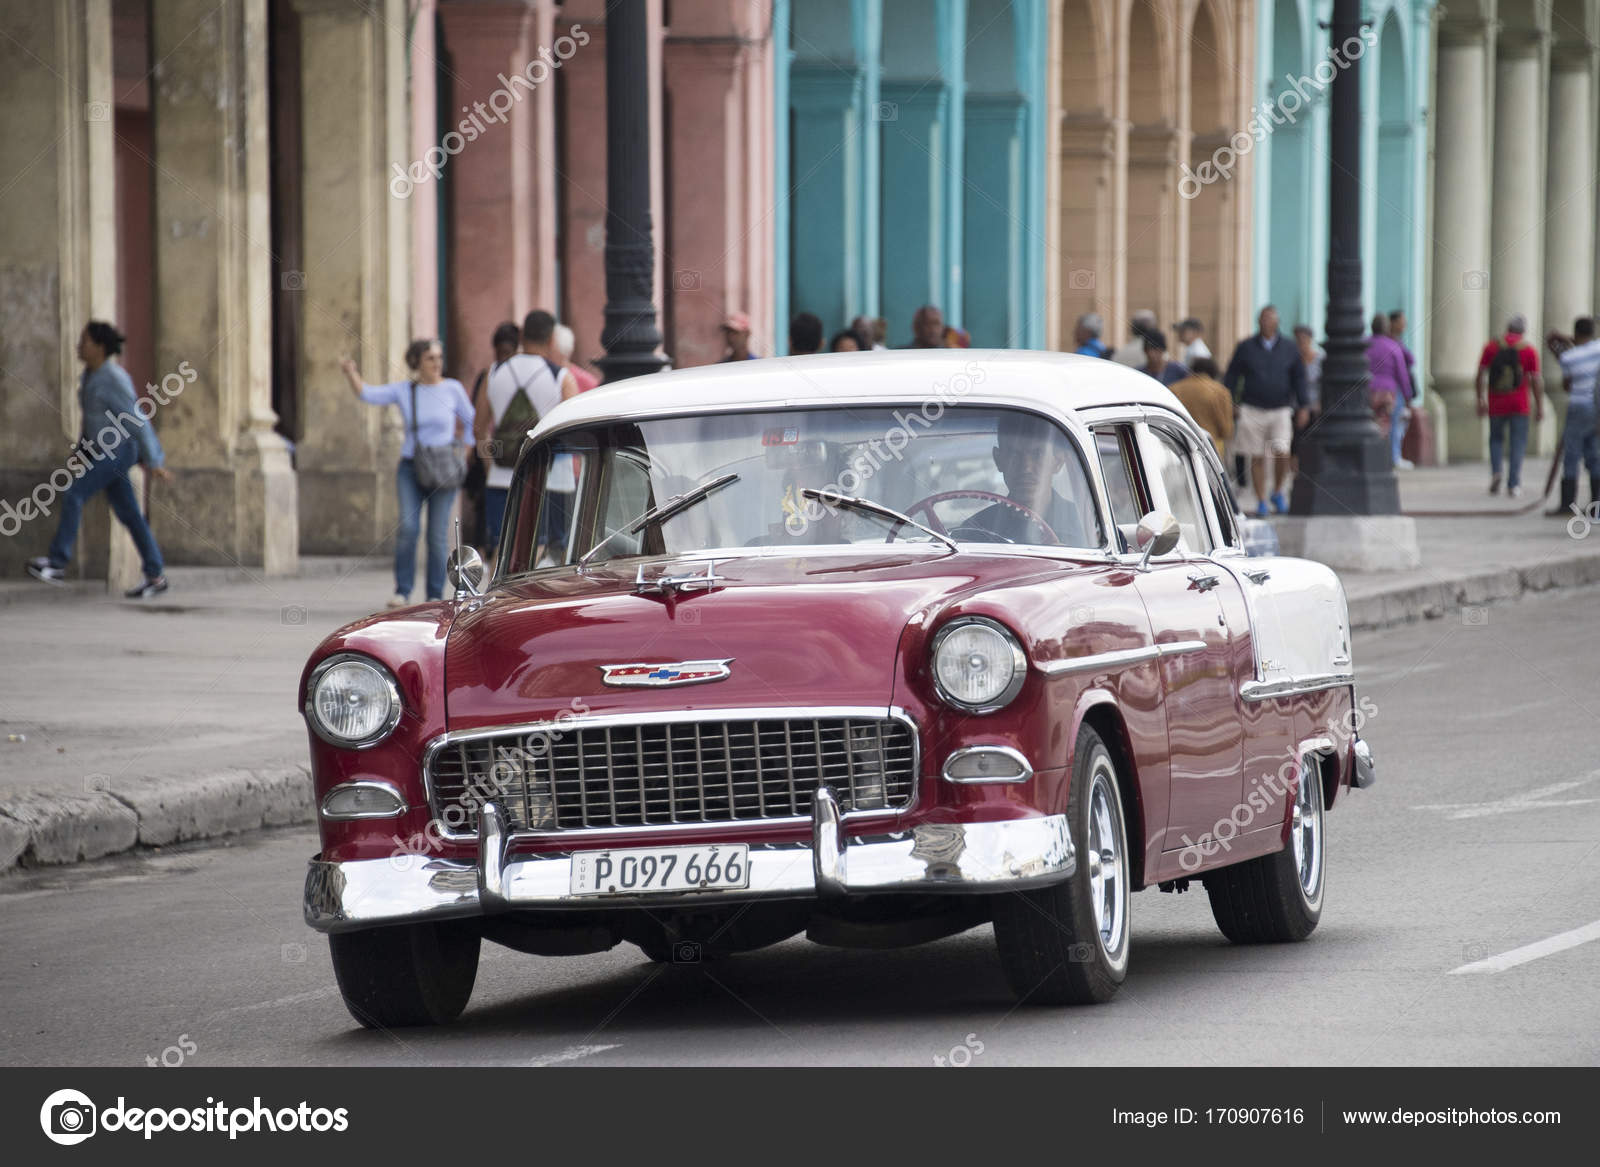 Pictures Of Cuba Old Vintage Cars In Action Stock Editorial Photo